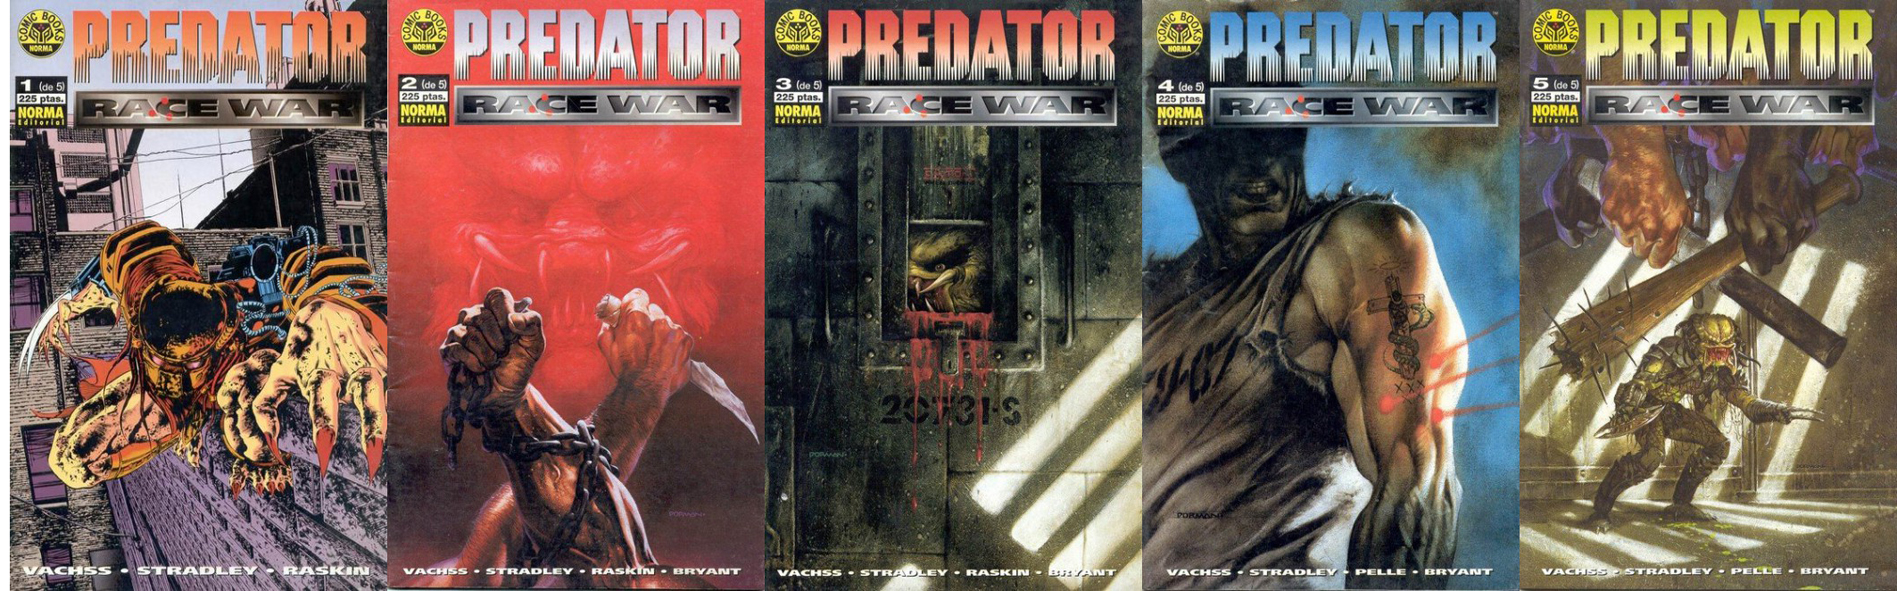 Predator_race_war